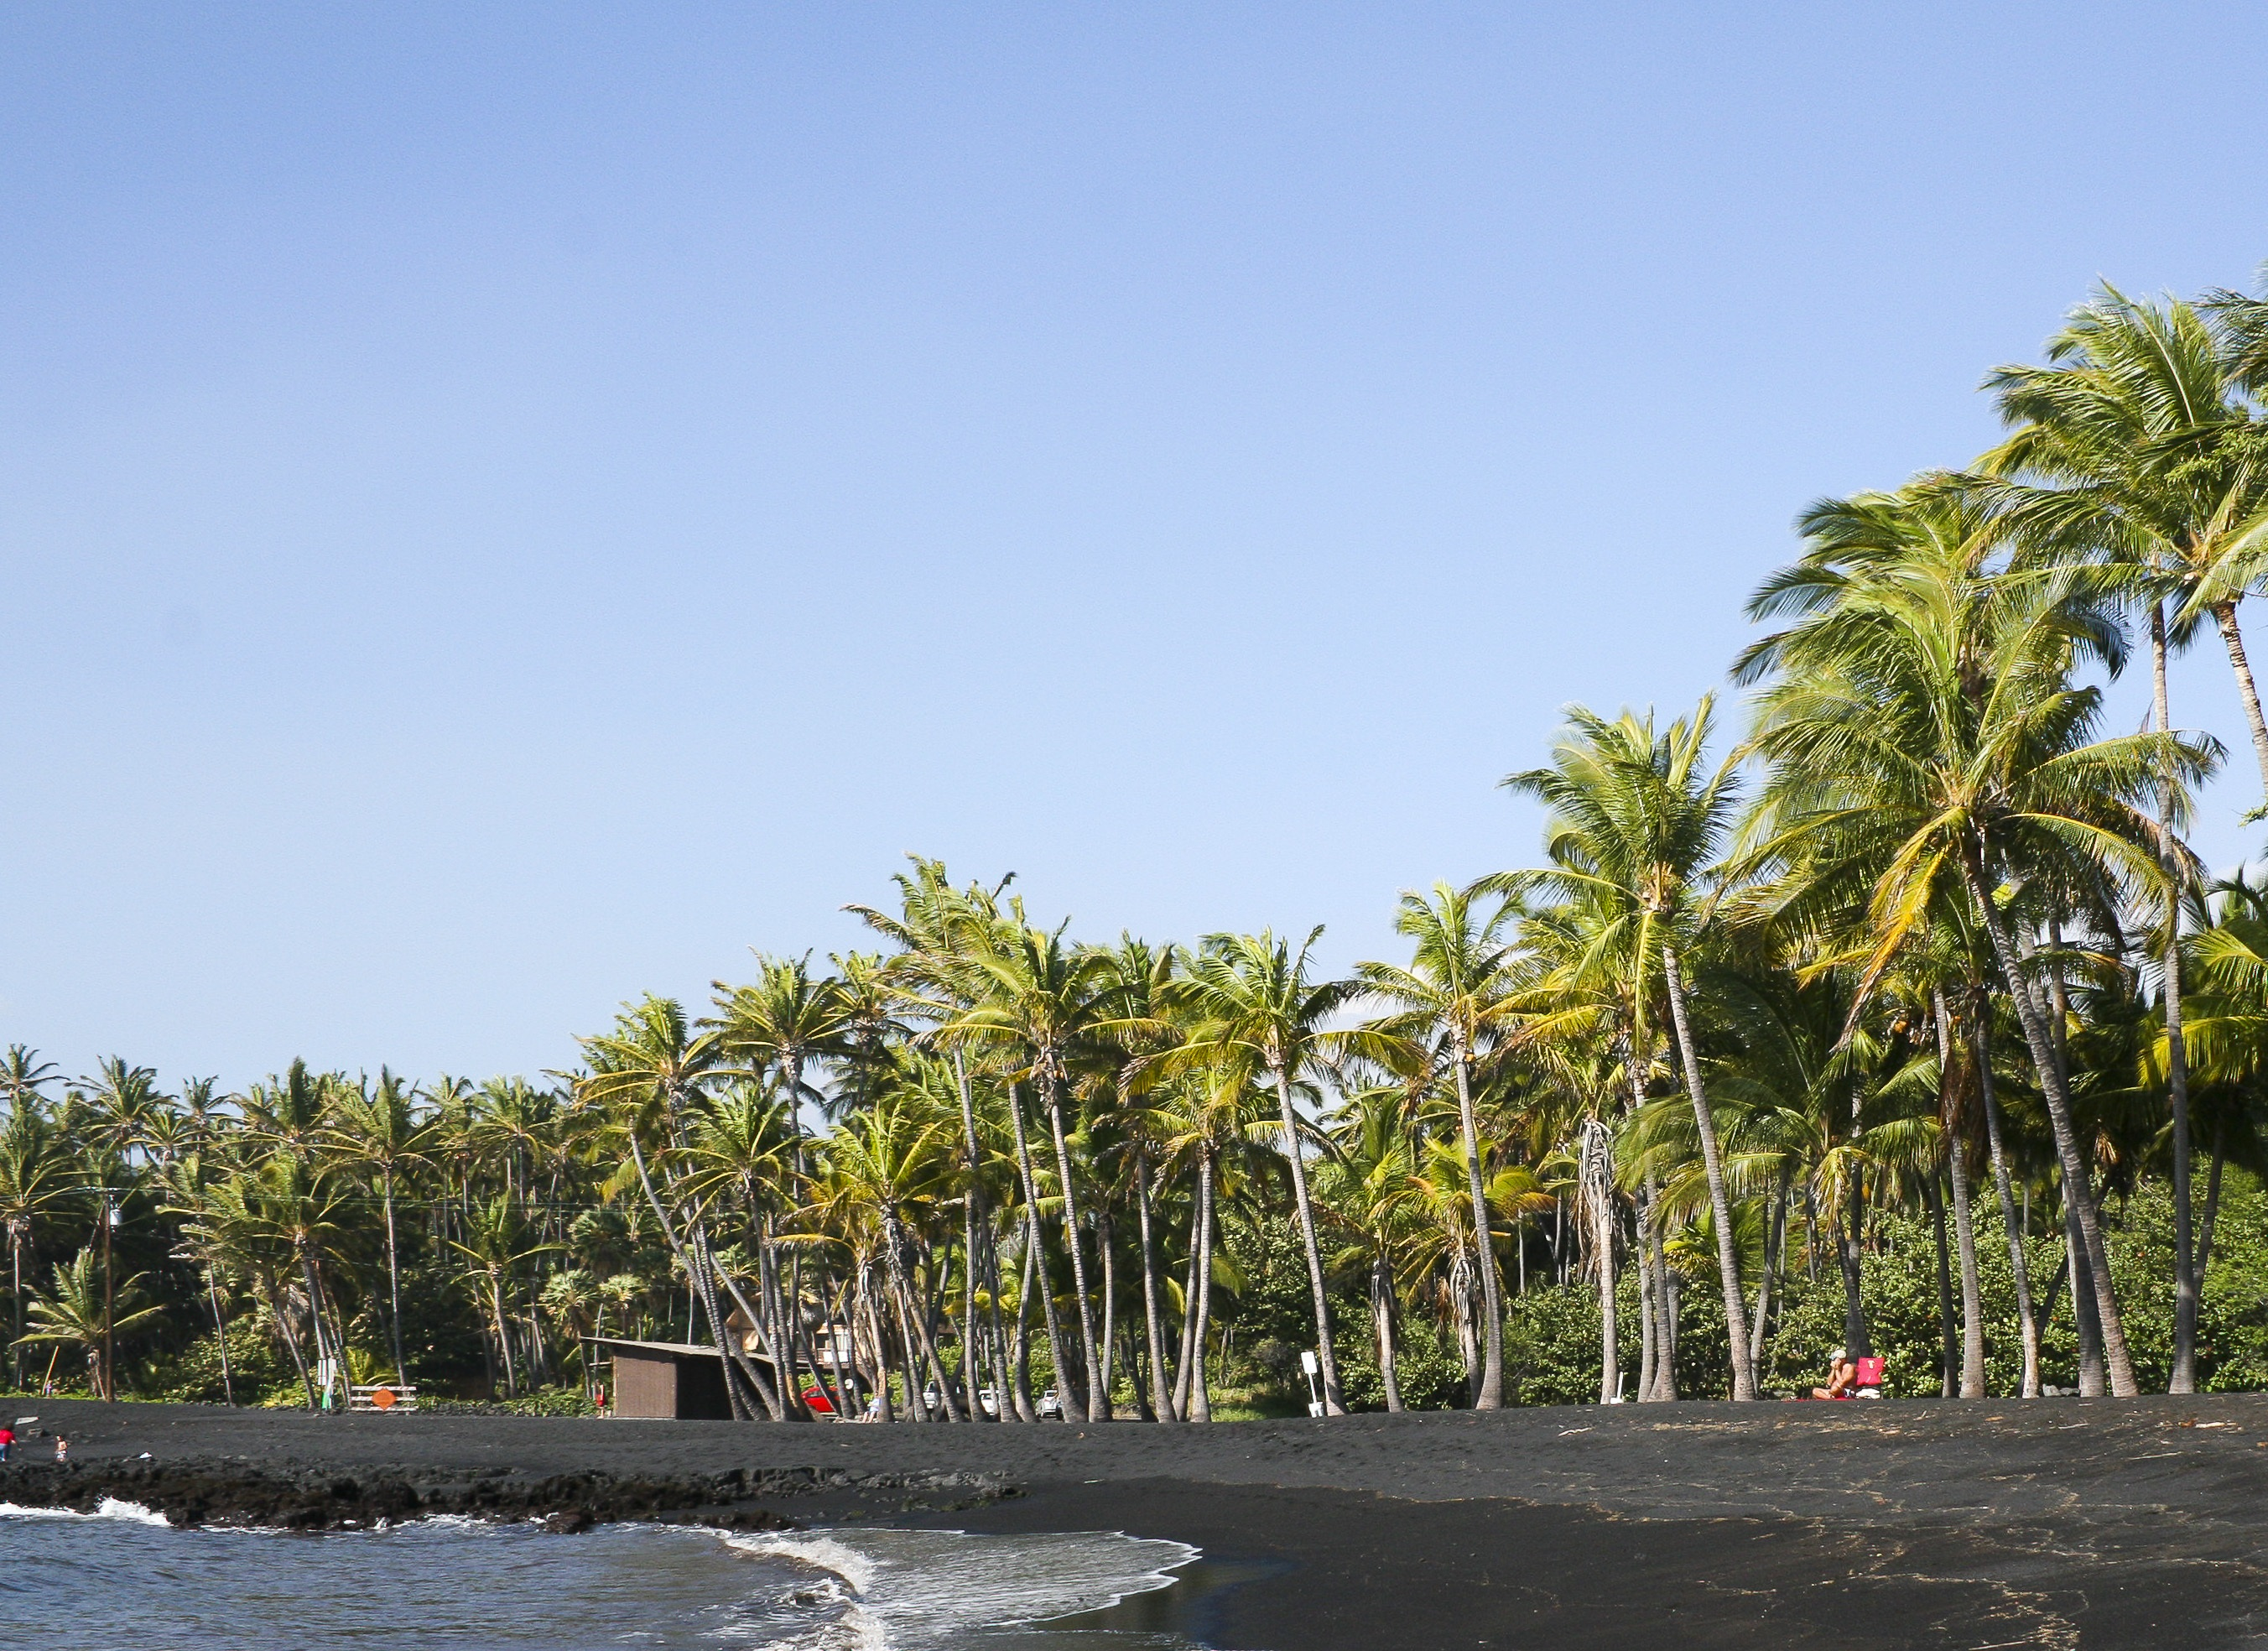 Punaluu_Black_Sand_Beach,_Hawaii,_USA8